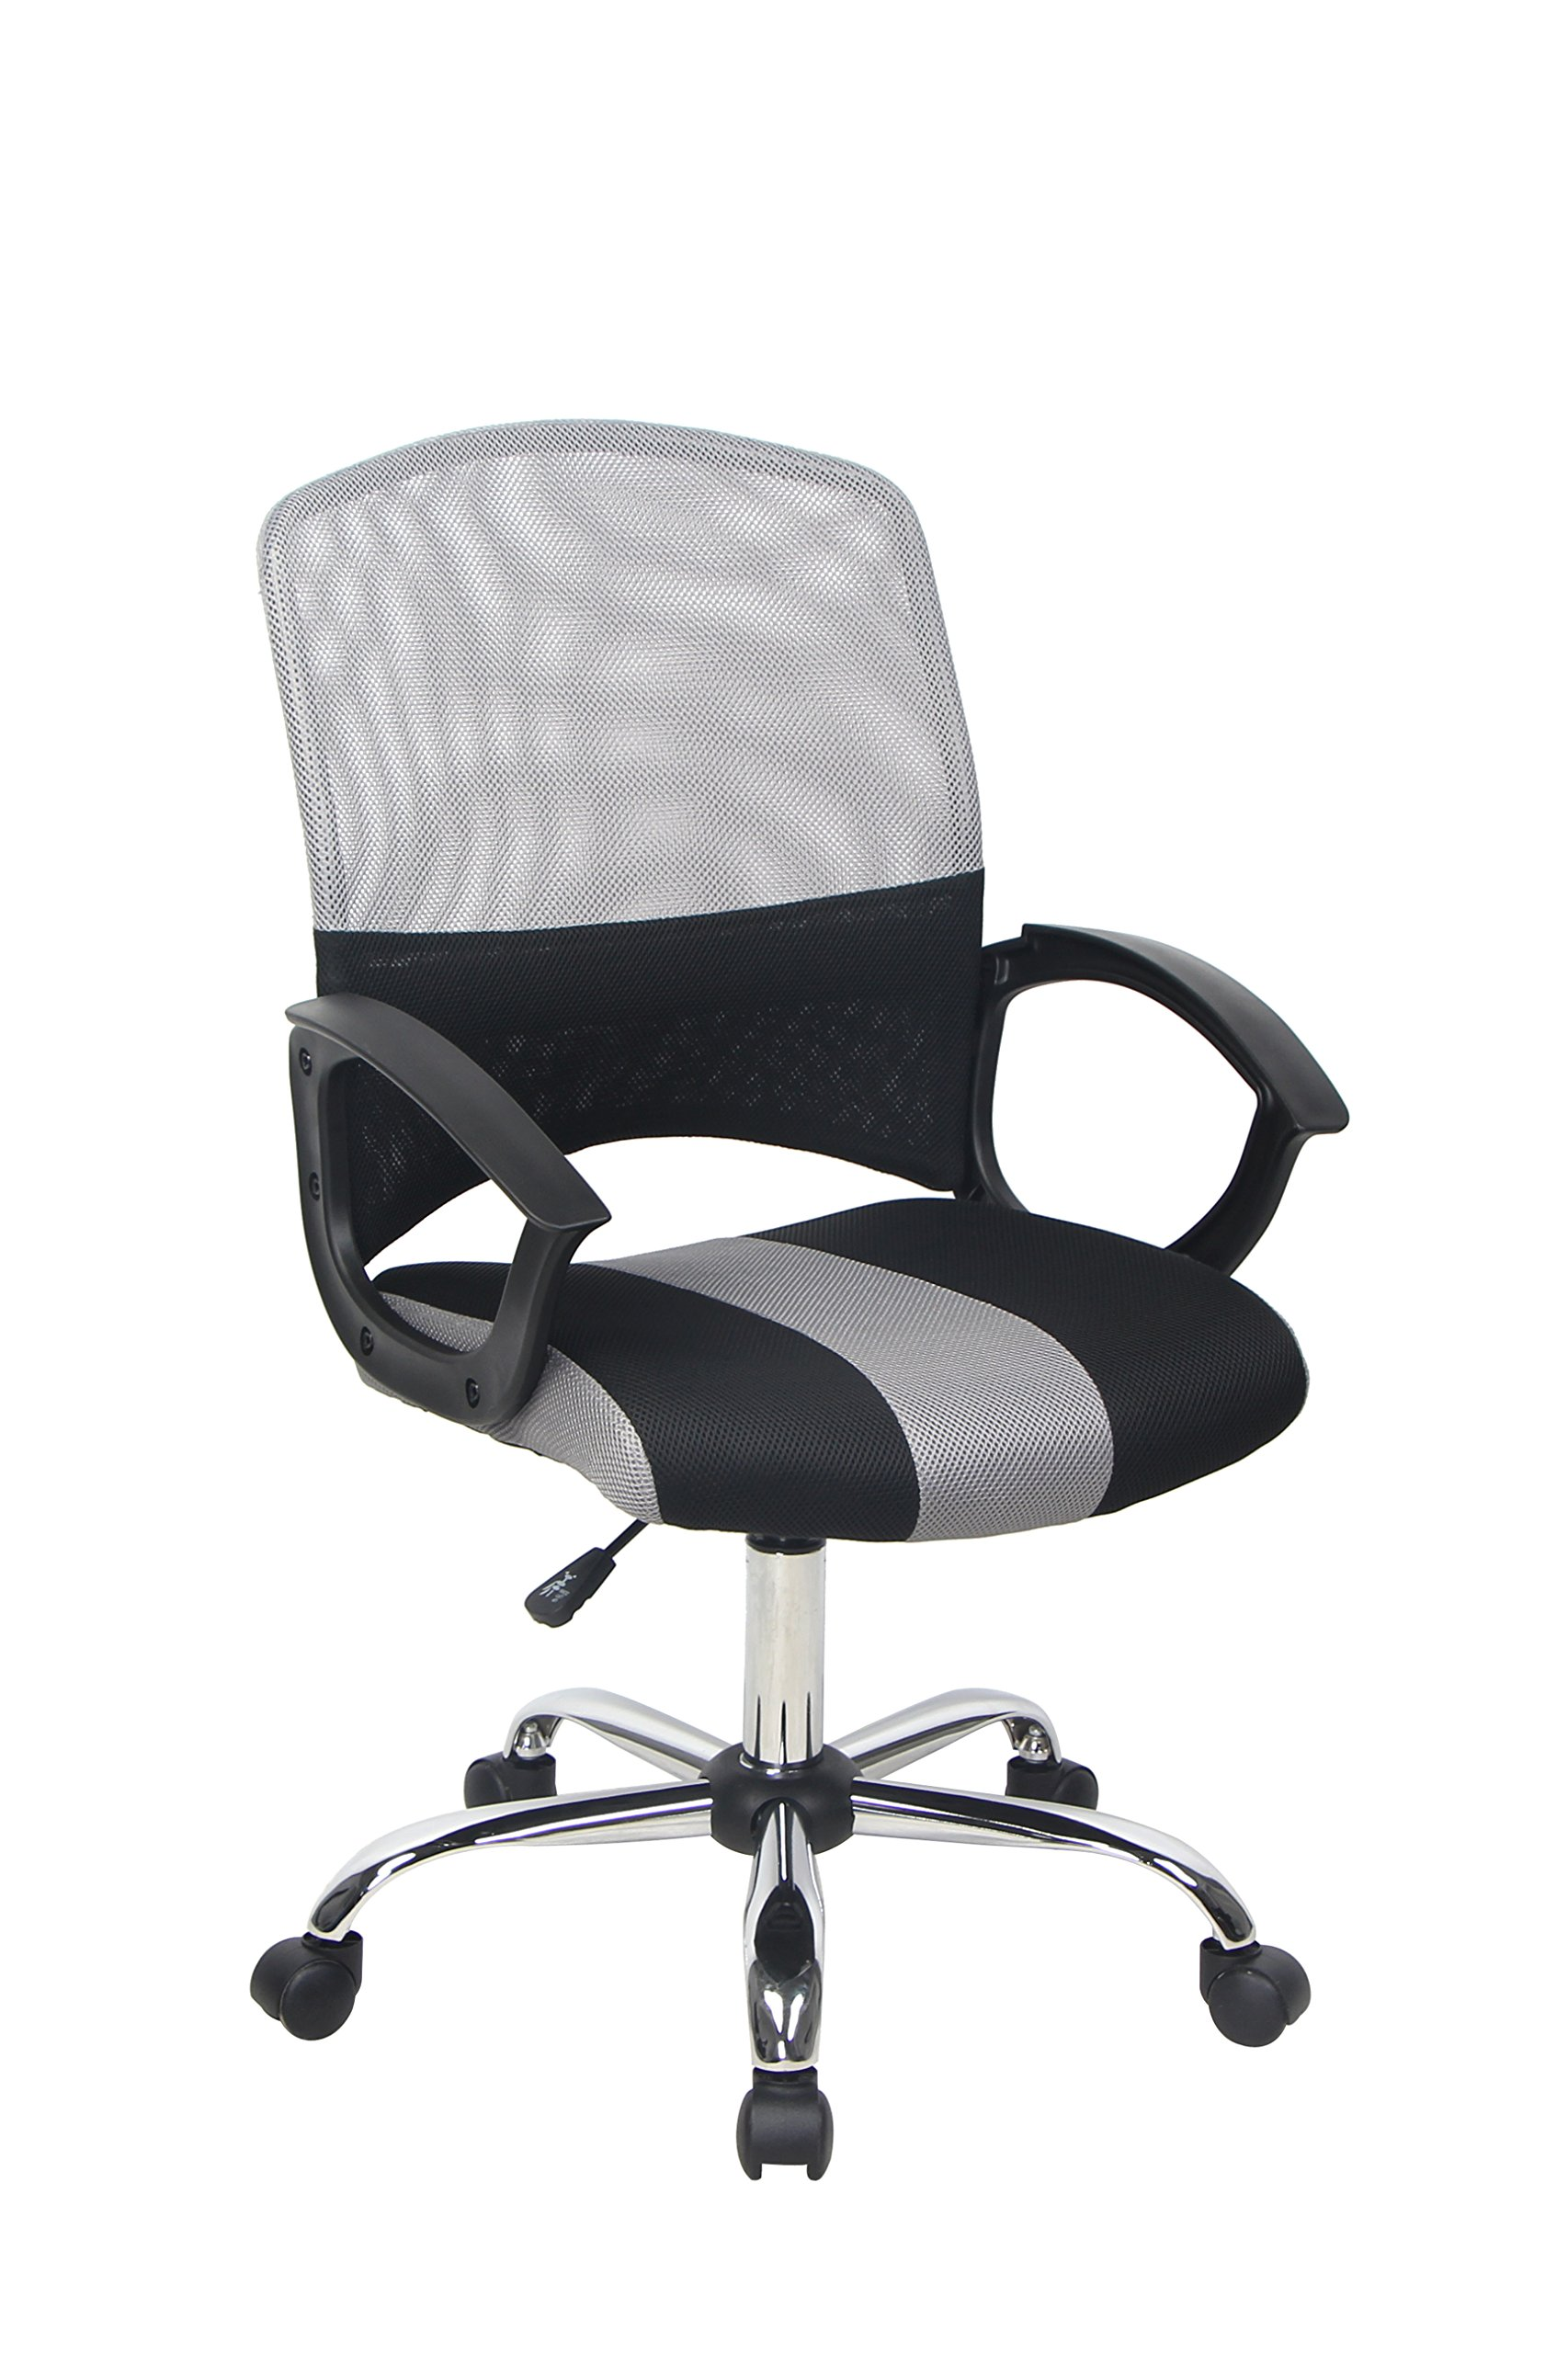 Bonum Ergonomic Office Desk Chair Adjustable Mesh Swivel Home Task Chairs with Padded Seat and Armrest,Black and Gray